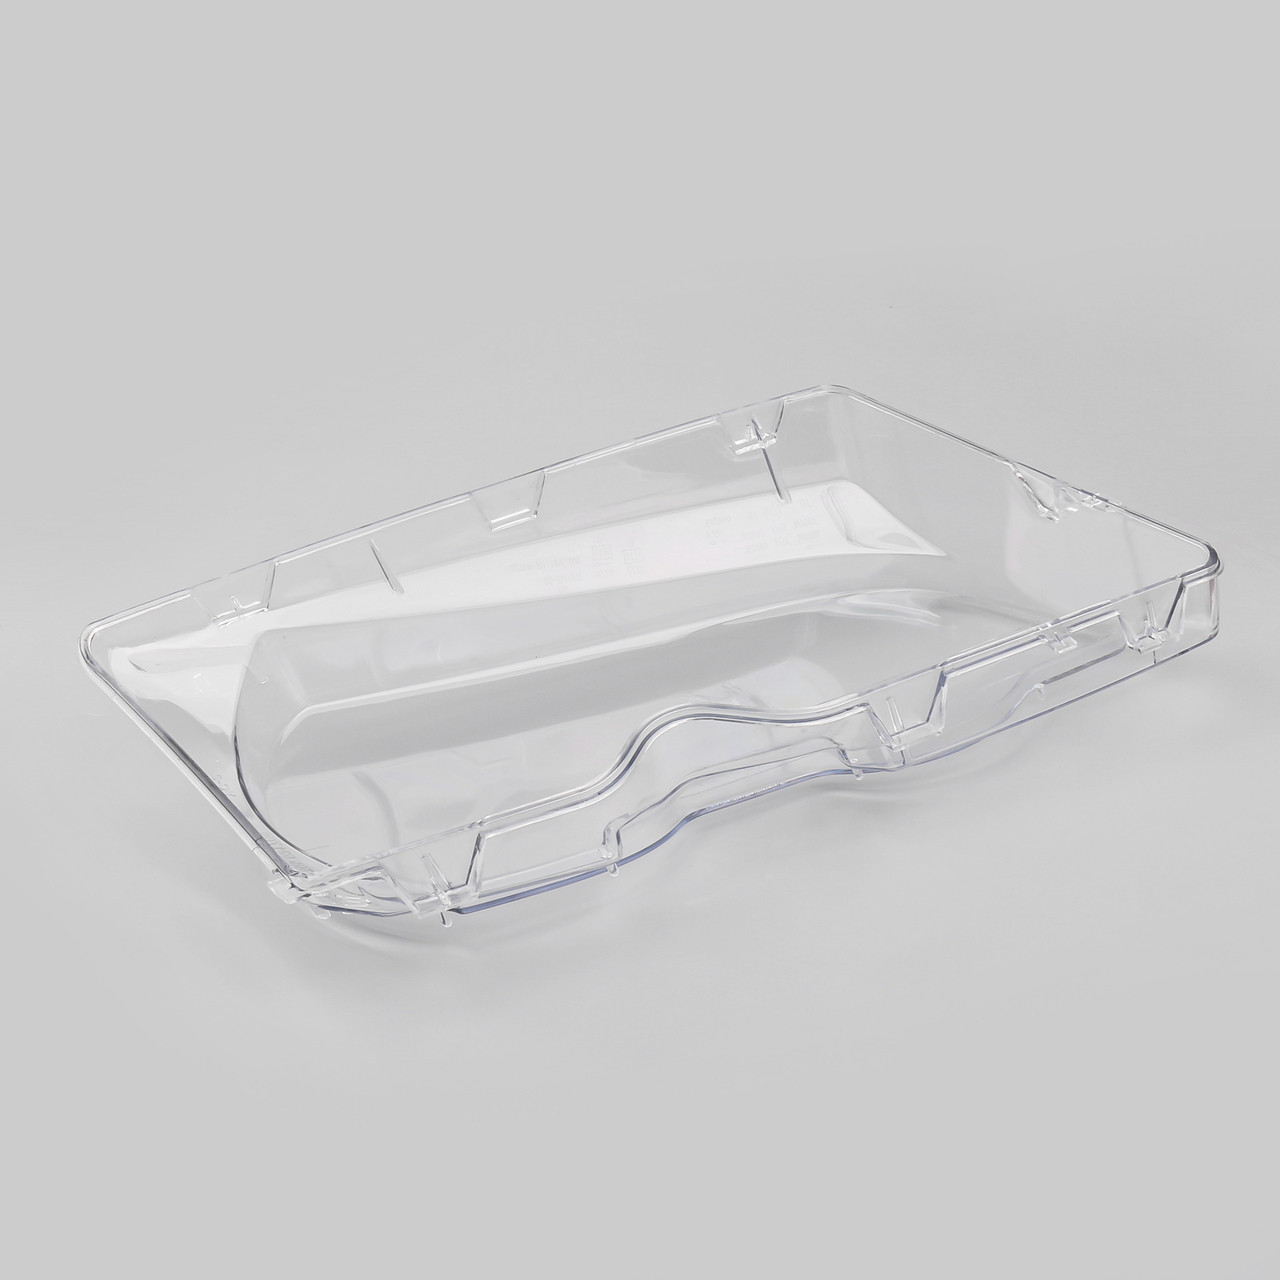 Headlight Lens Replacement Covers Left For BMW E46 2Doors (1998-2001)